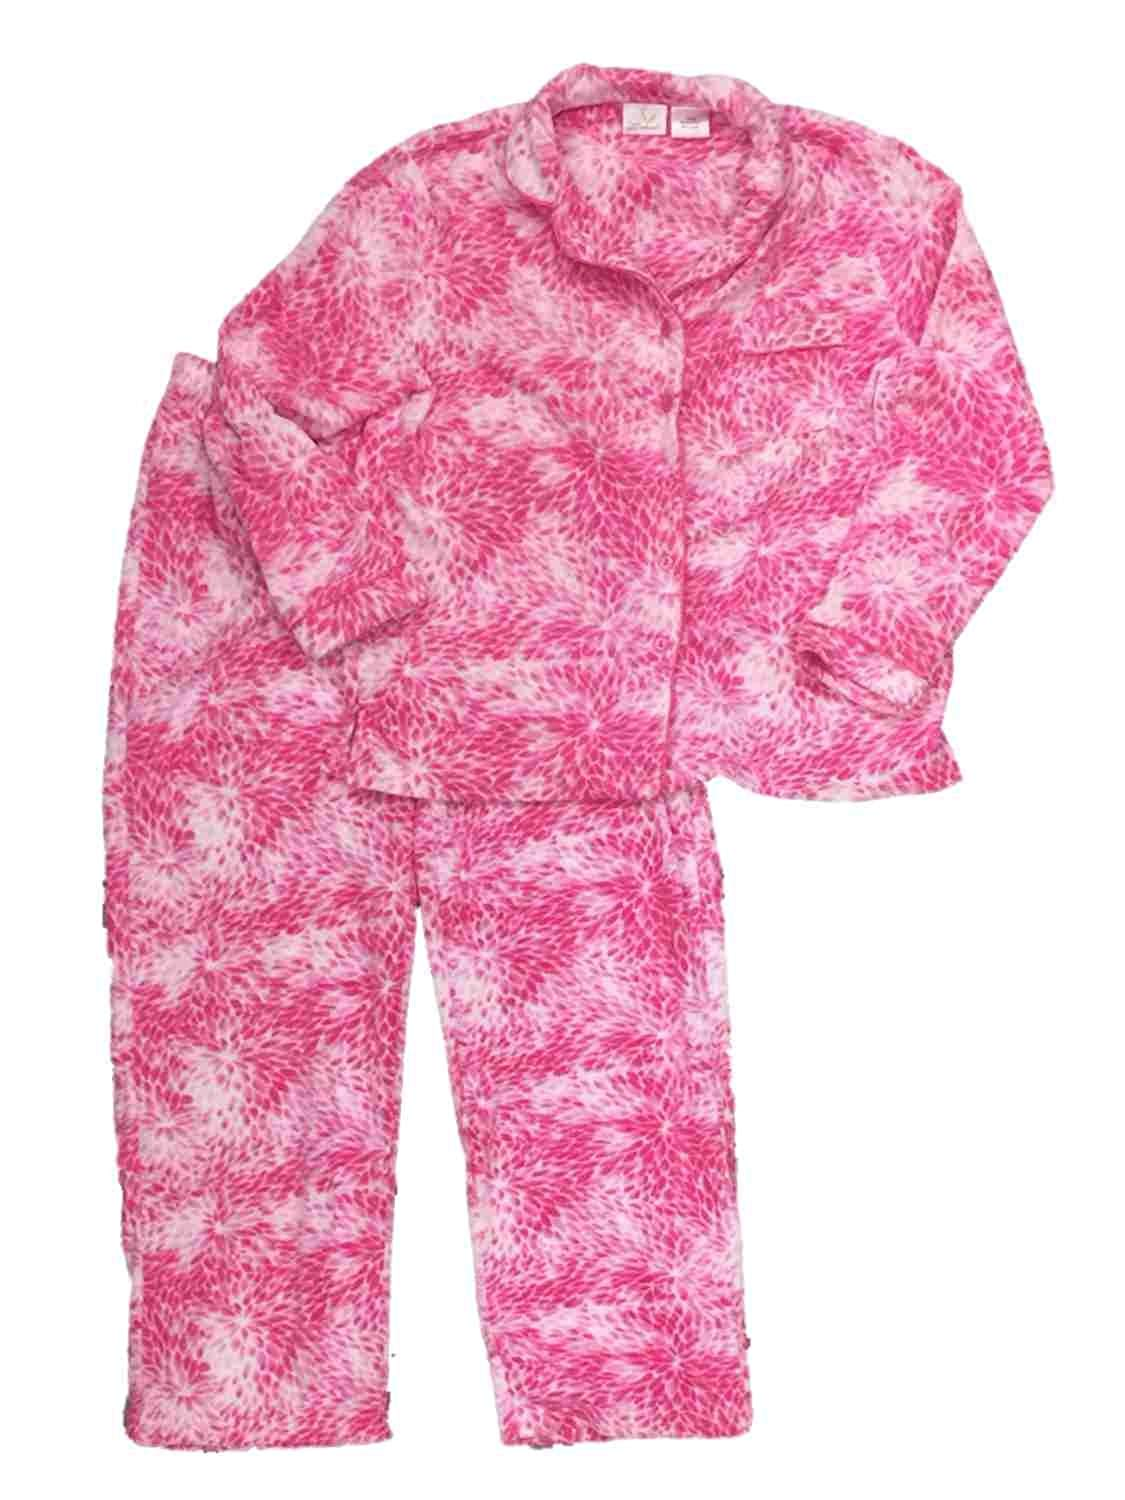 Soft Sensations Womens Pink Flower Paisley Fleece Pajamas PJs Lounge Sleep  Set 2587c0bdd